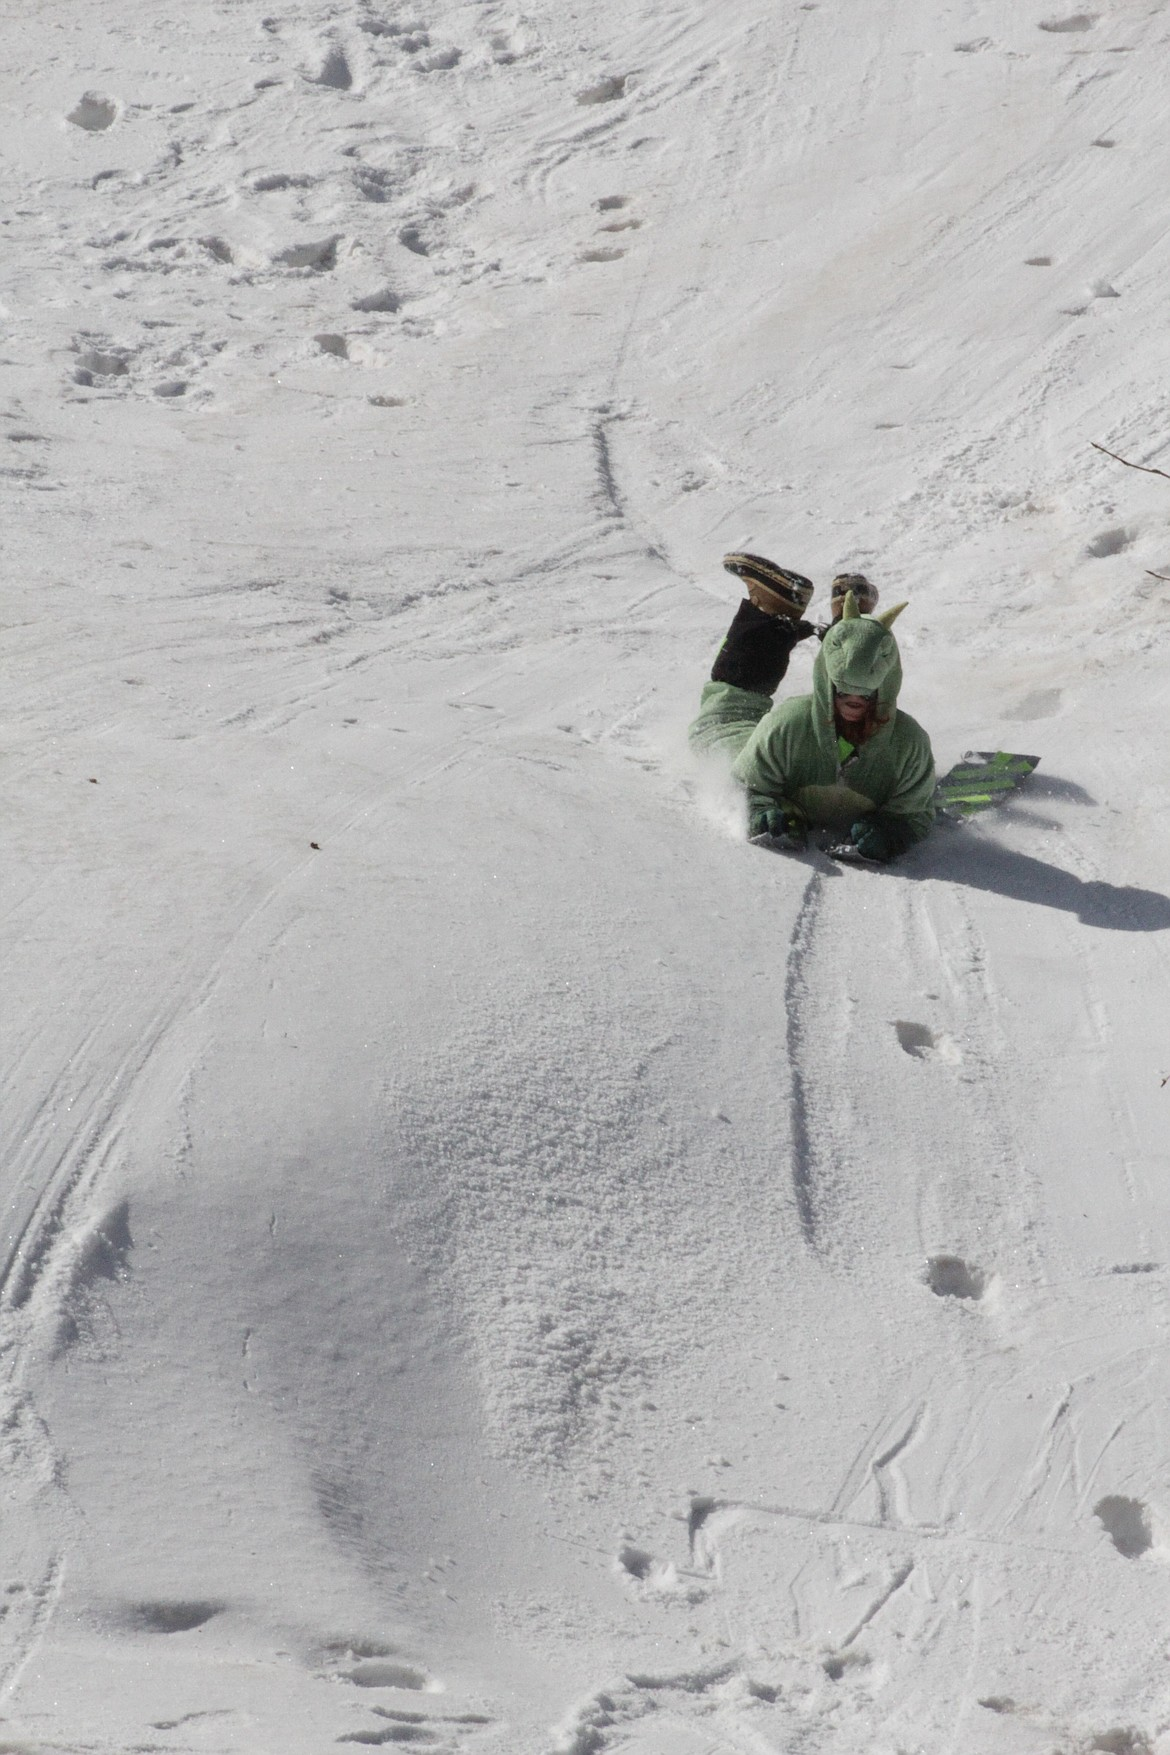 Logan slides down the hill at Schweitzer Tuesday morning.